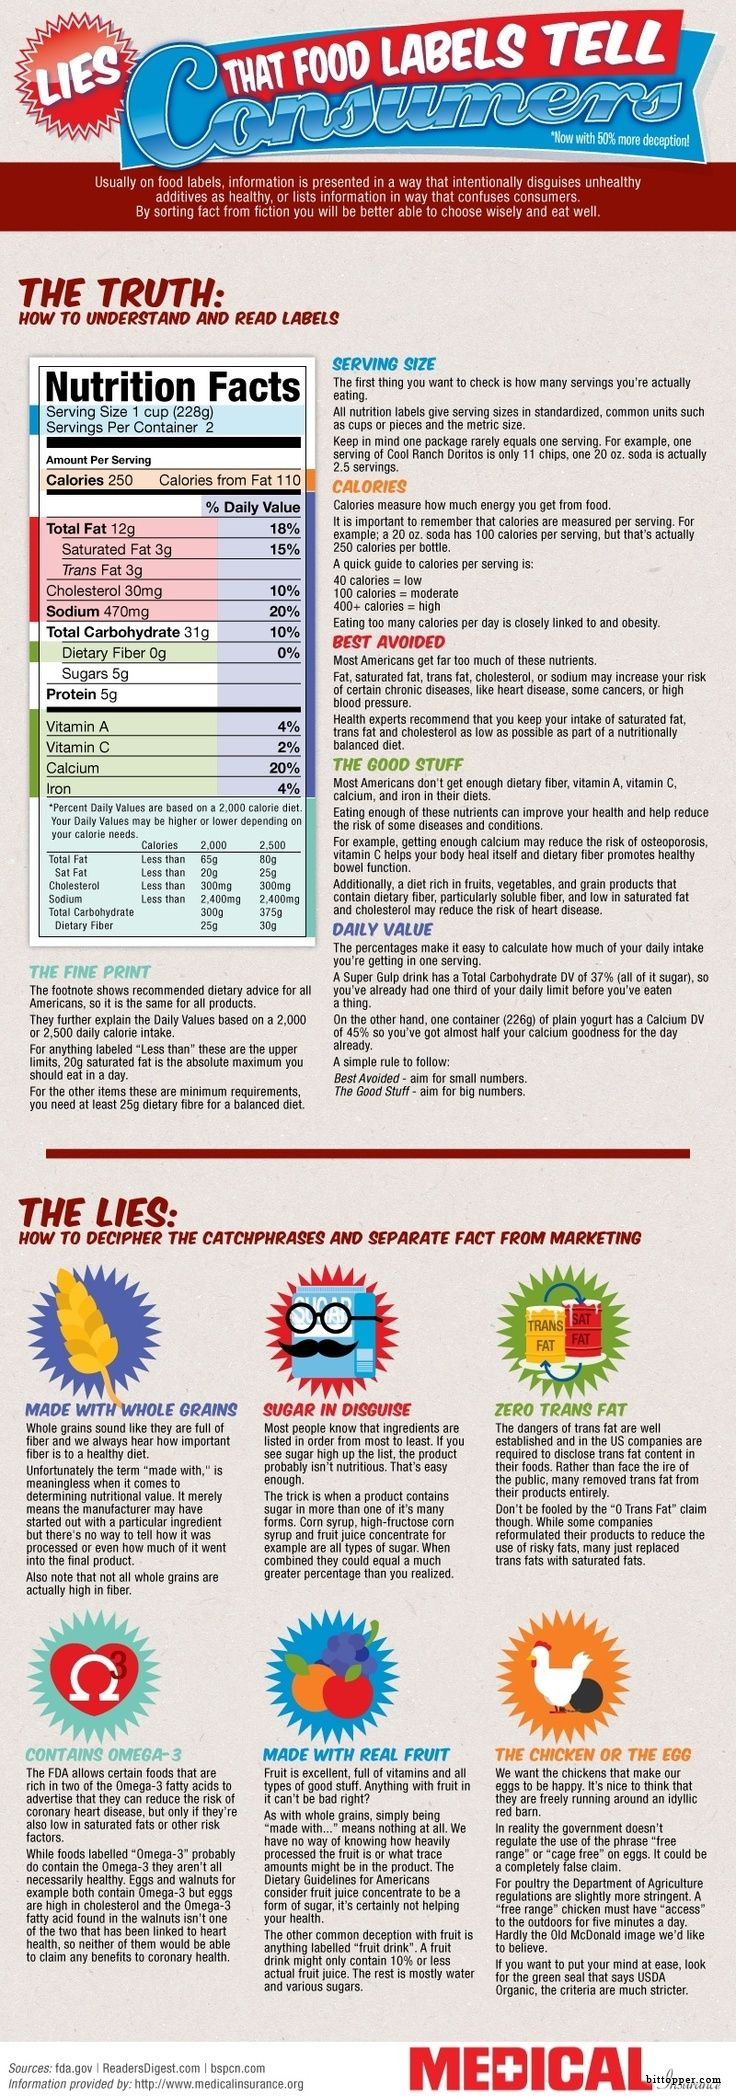 #Food Labels #Infographic via www.bittopper.com/post.php?id=204215782952c7206b4f9154.17946652